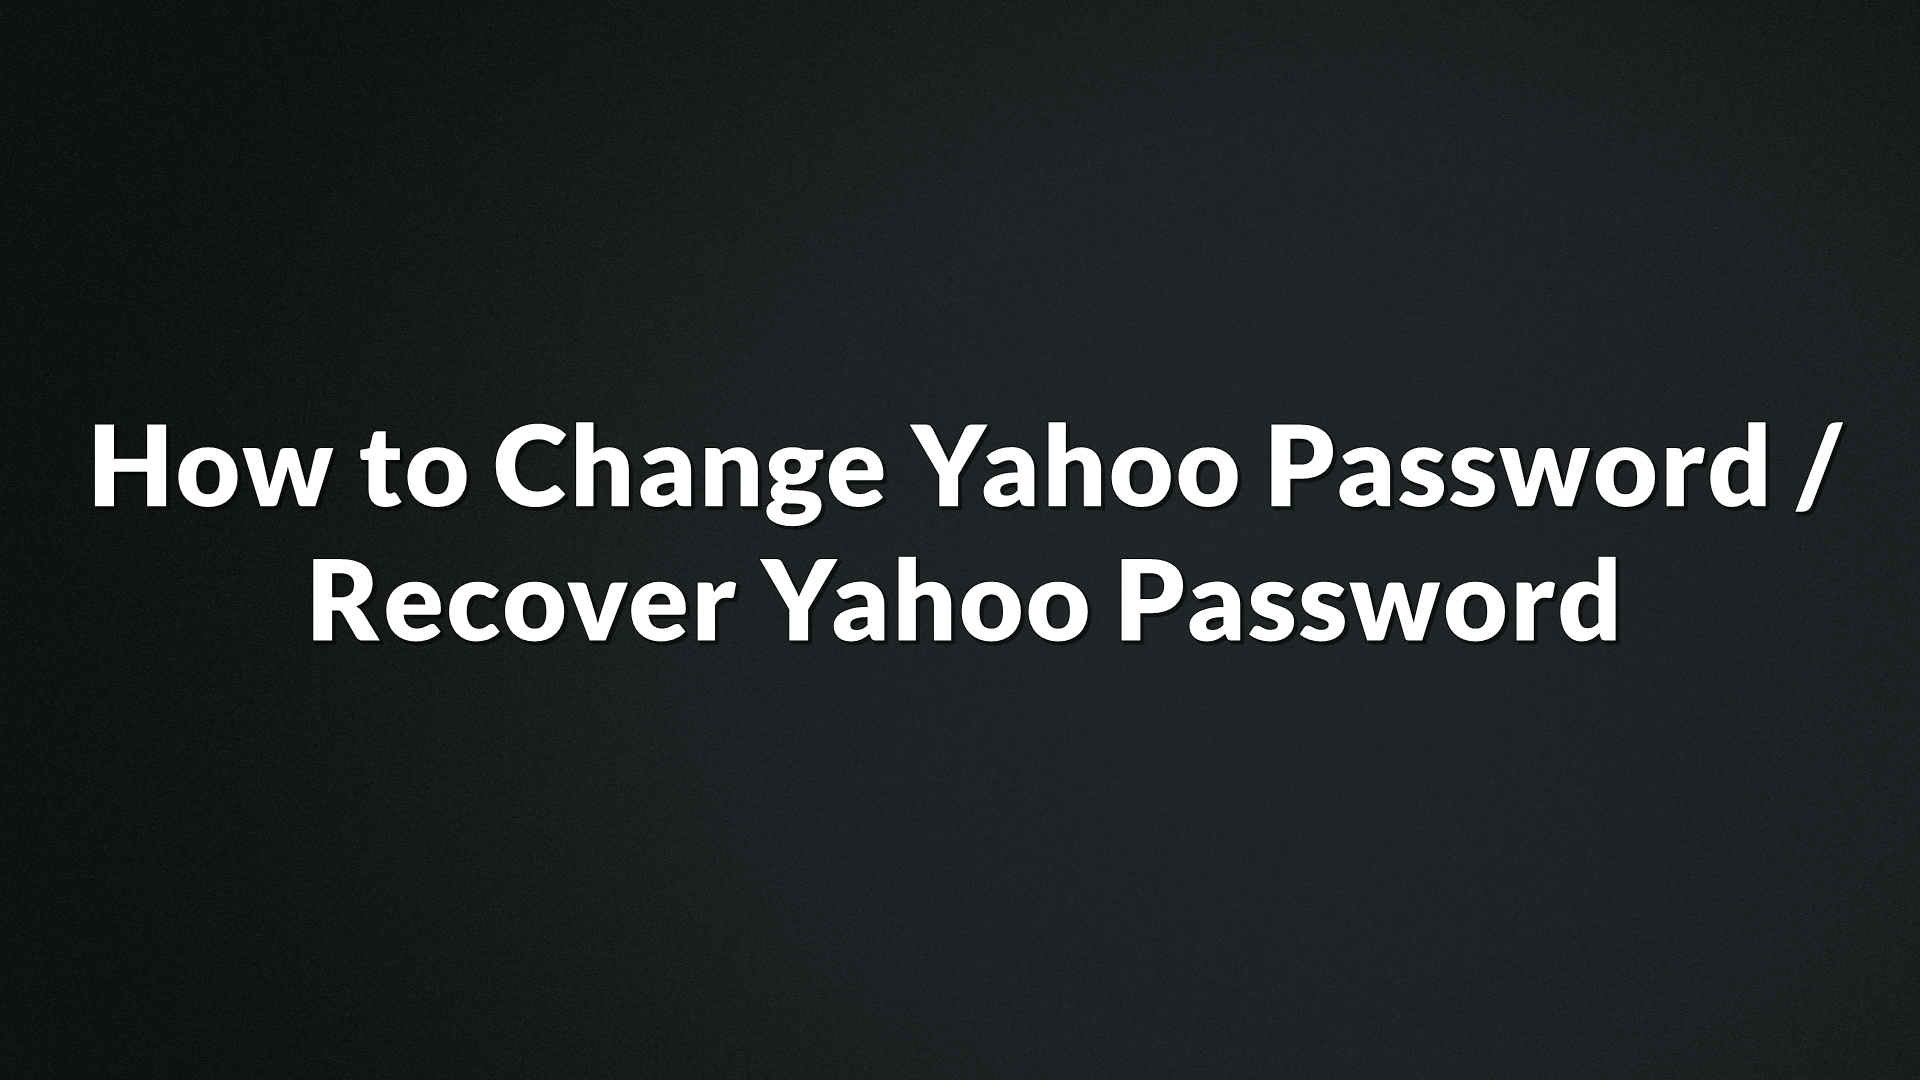 How to Change Yahoo Password, Recover Yahoo Password